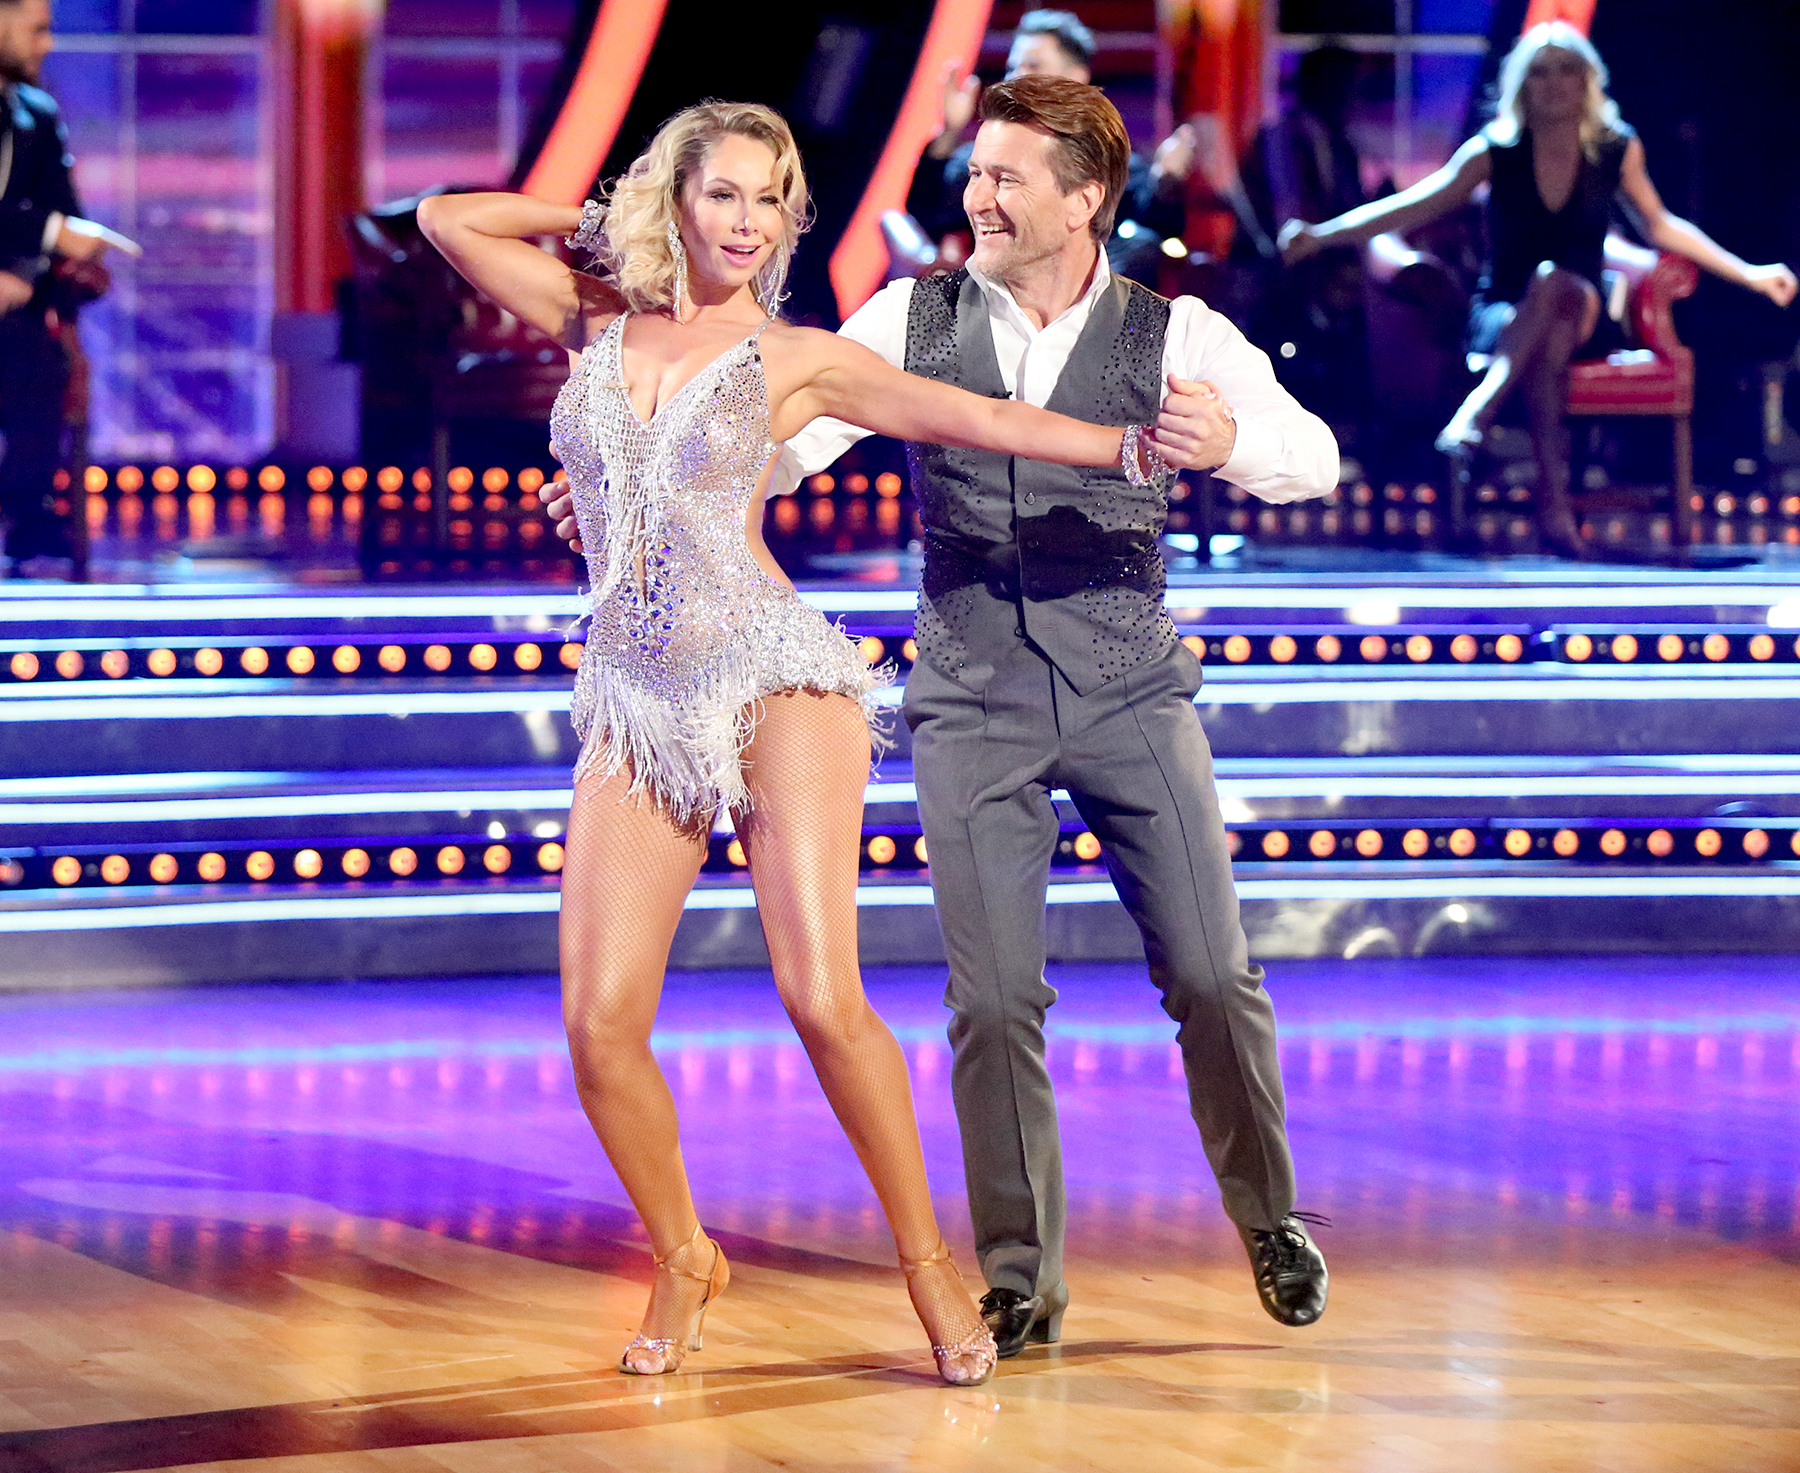 Are mark and whitney from dancing with the stars hookup